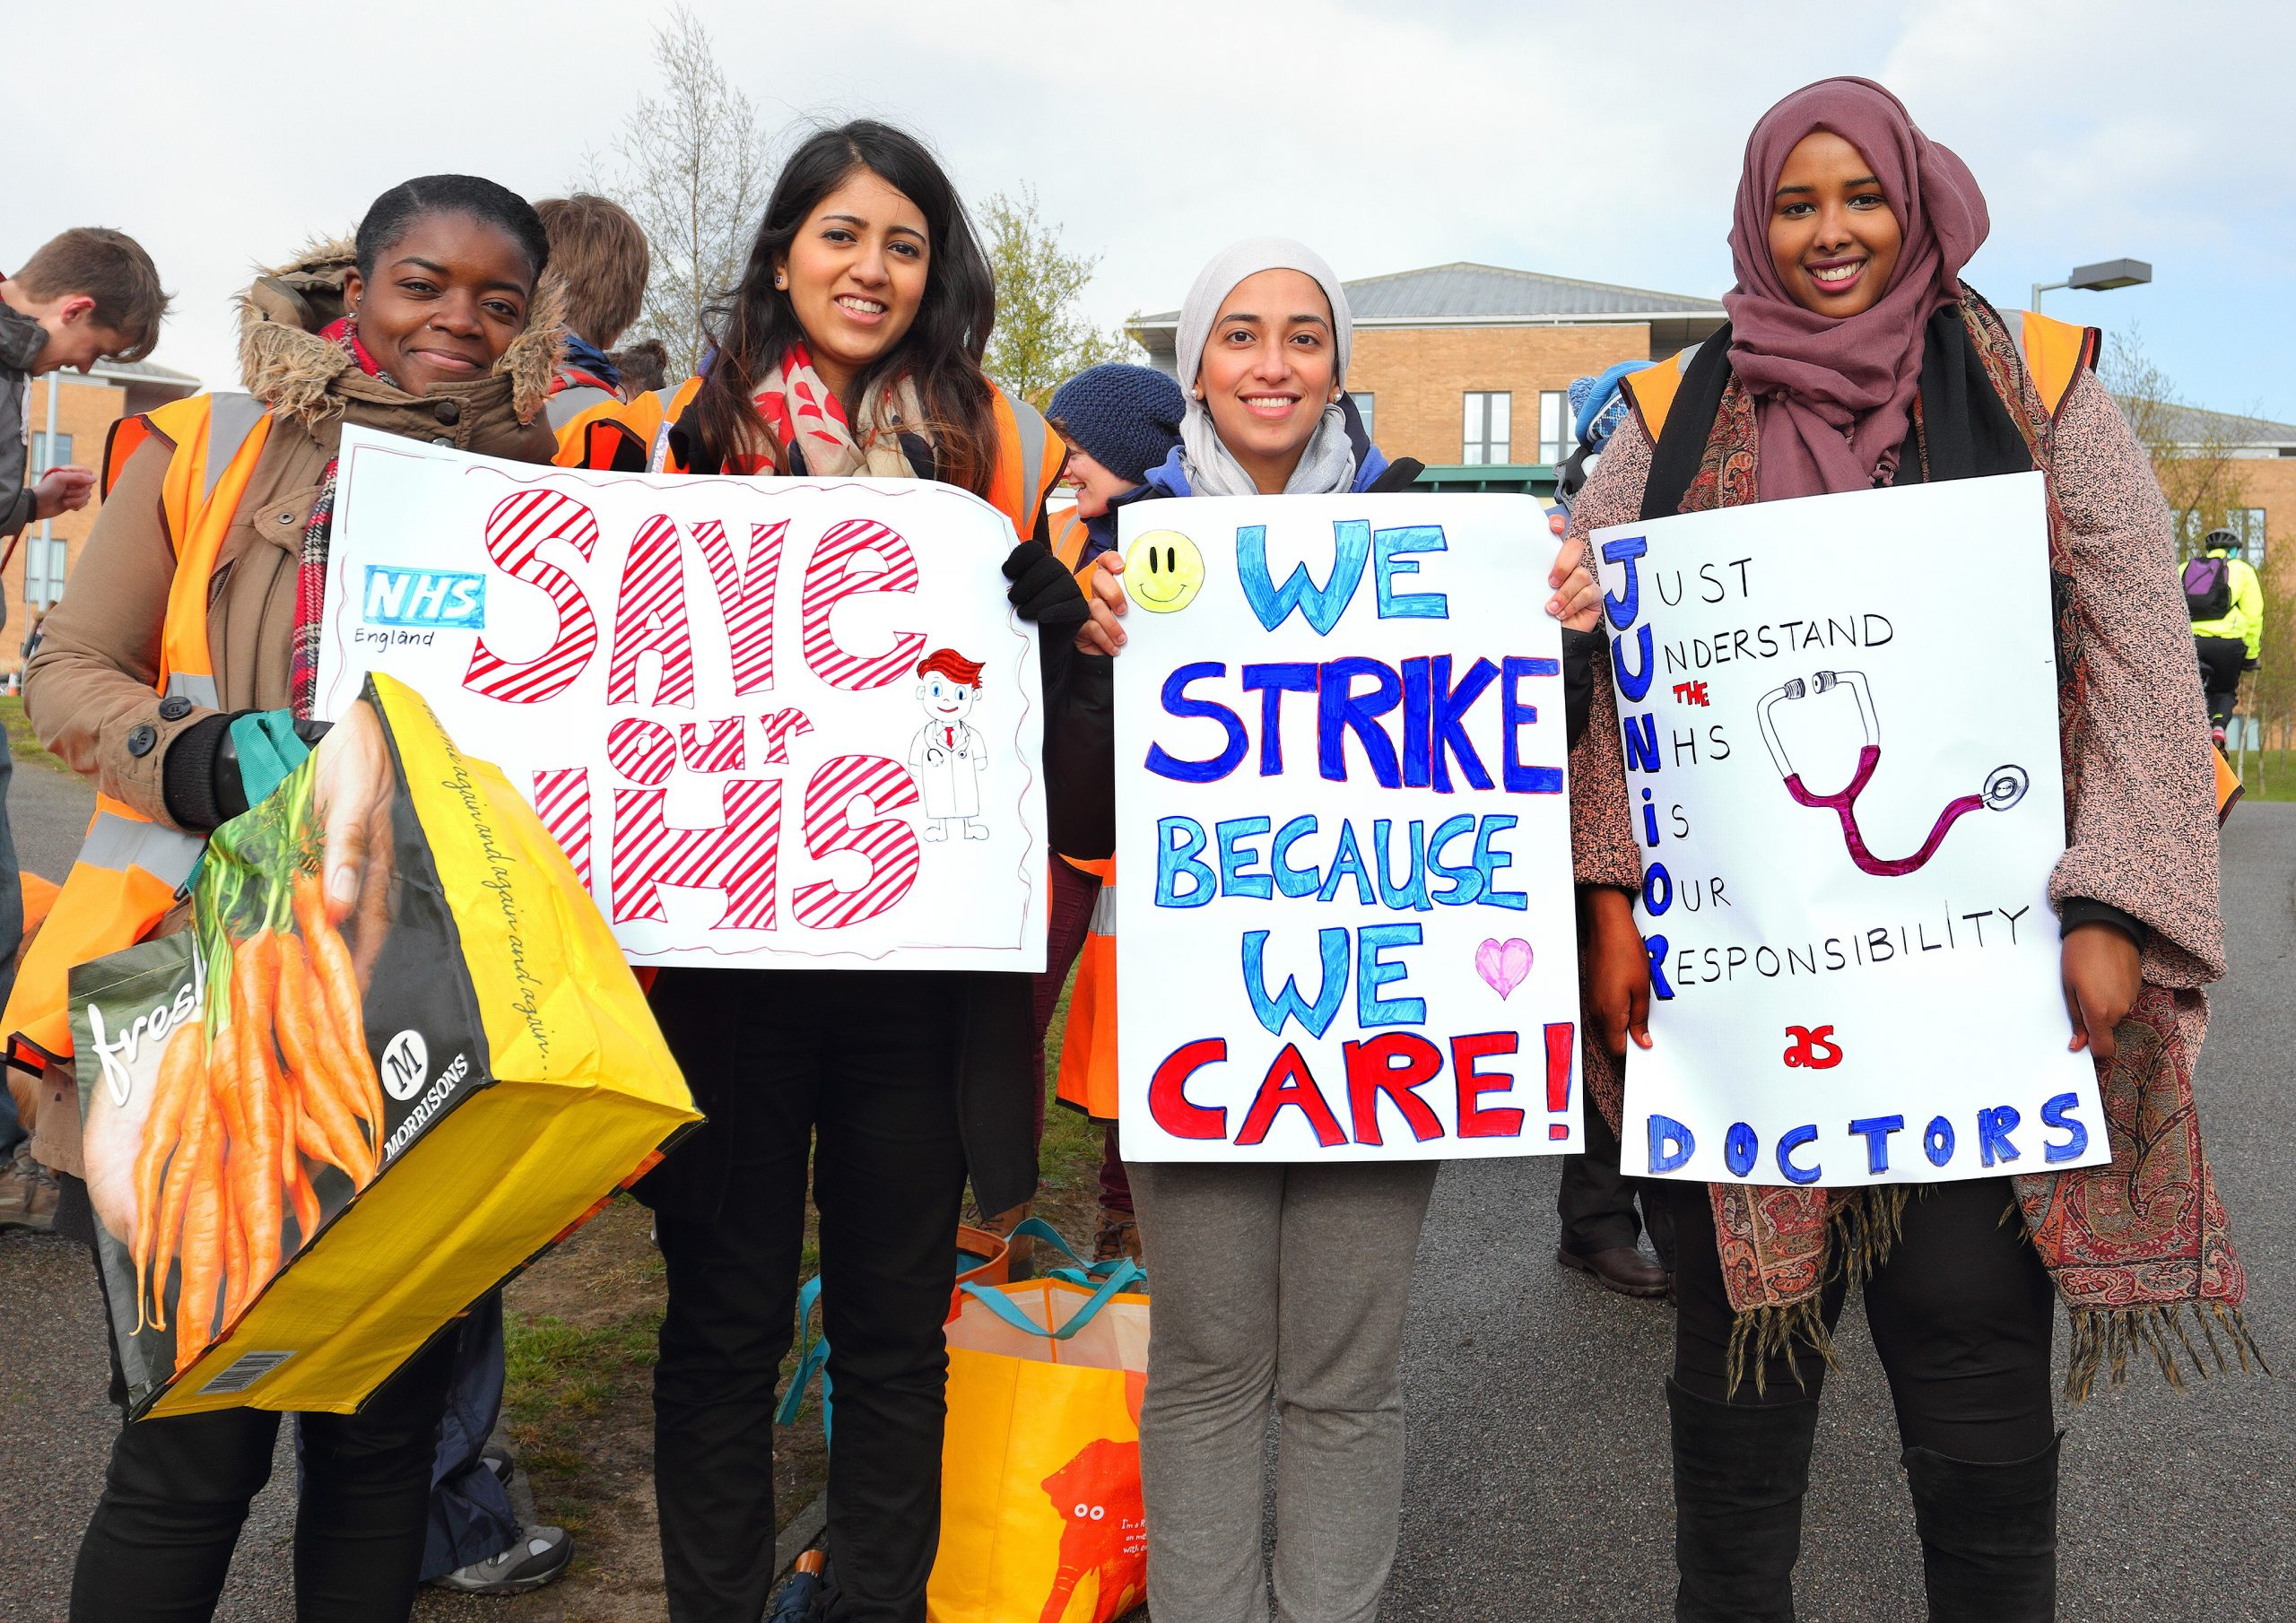 Four female junior doctors holding placards